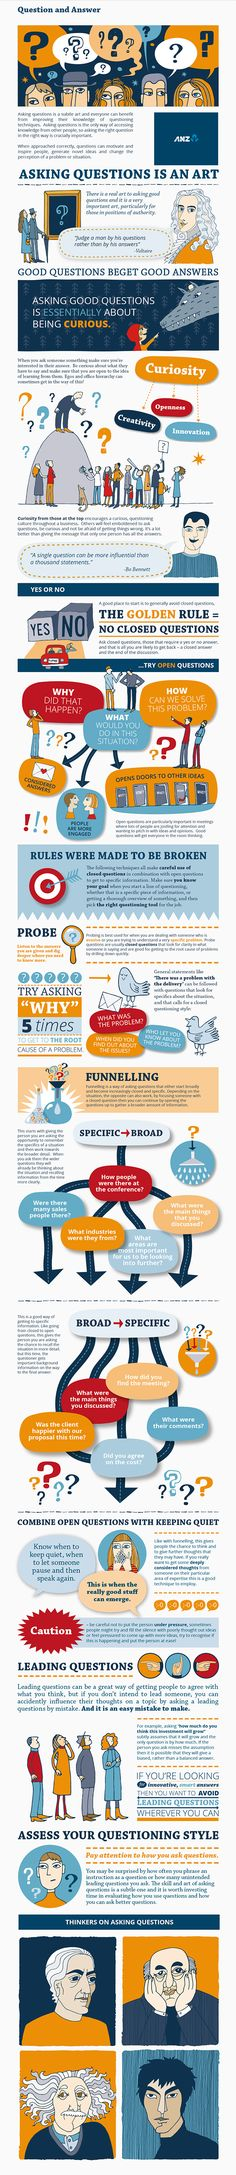 The Art of Asking Questions {Infographic}